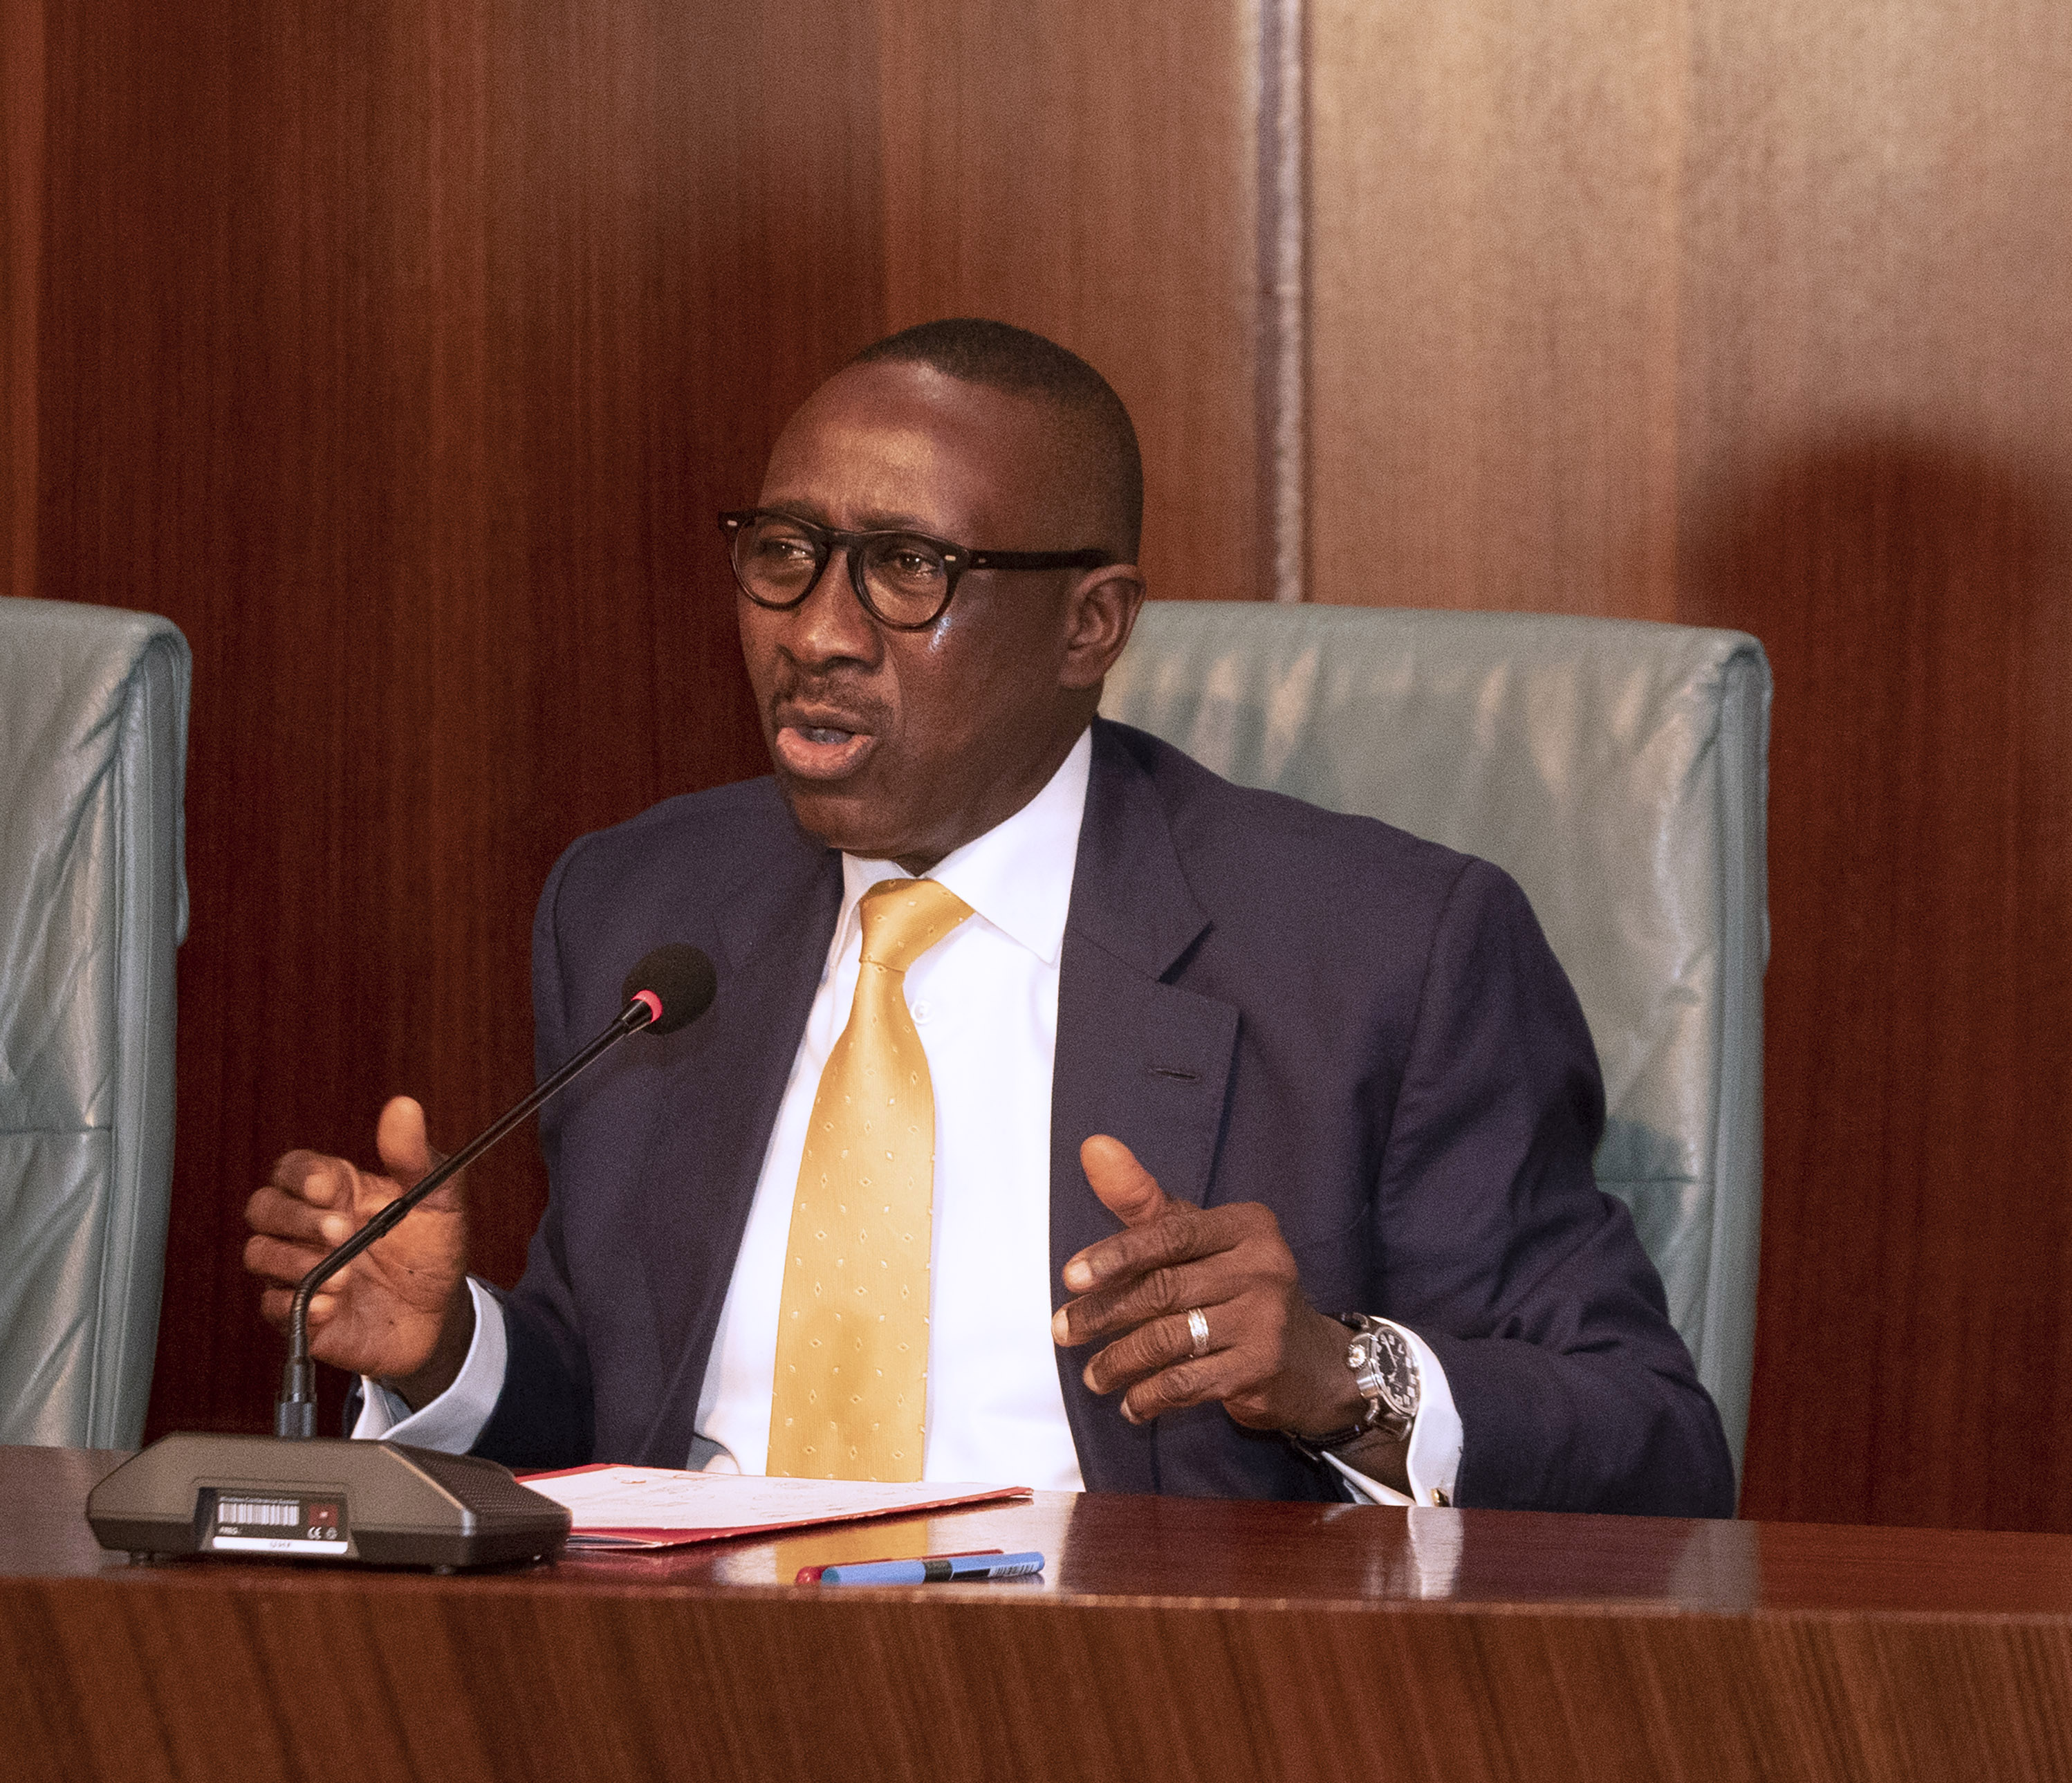 Monguno: I met Gumi and he promised to help FG on insecurity — we're waiting for him